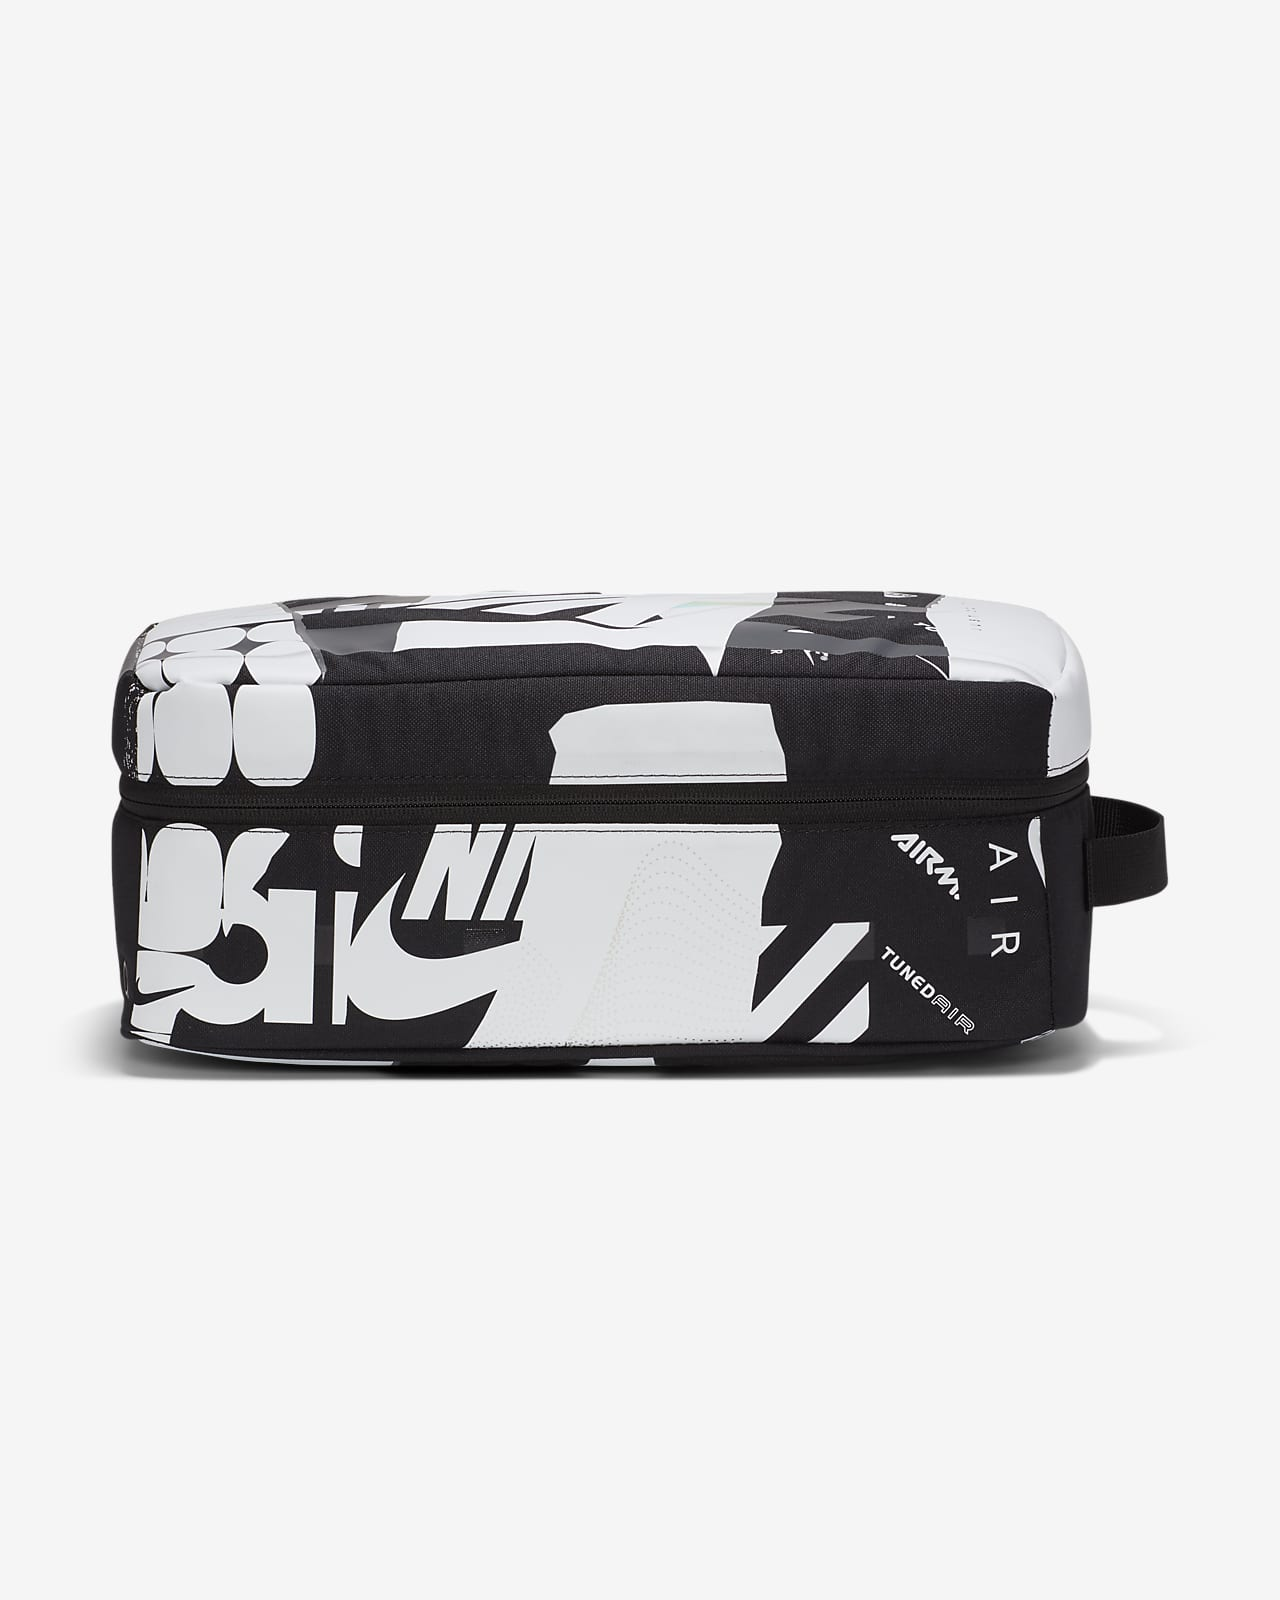 Nike Sportswear Shoe Box Bag